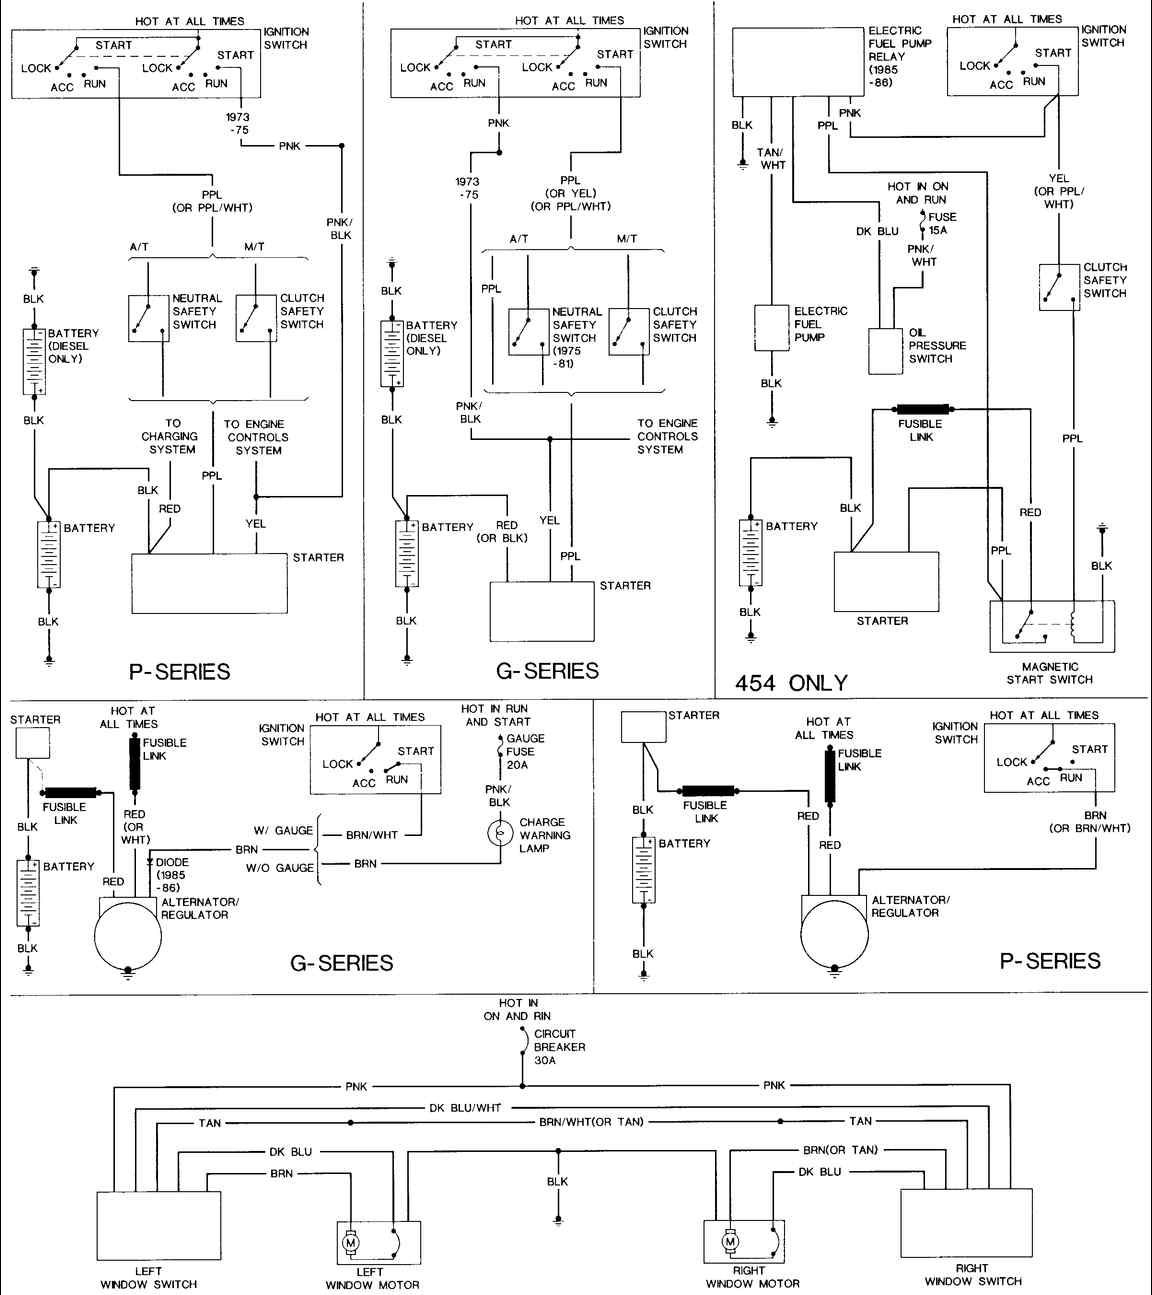 1984 G30 Wiring Diagram | Wiring Diagram  Chevy K Wiring Diagram on chevy pickup headlamp wiring, chevy k10 6 inch lift, chevy tail light diagram, 89 chevy truck light diagram,